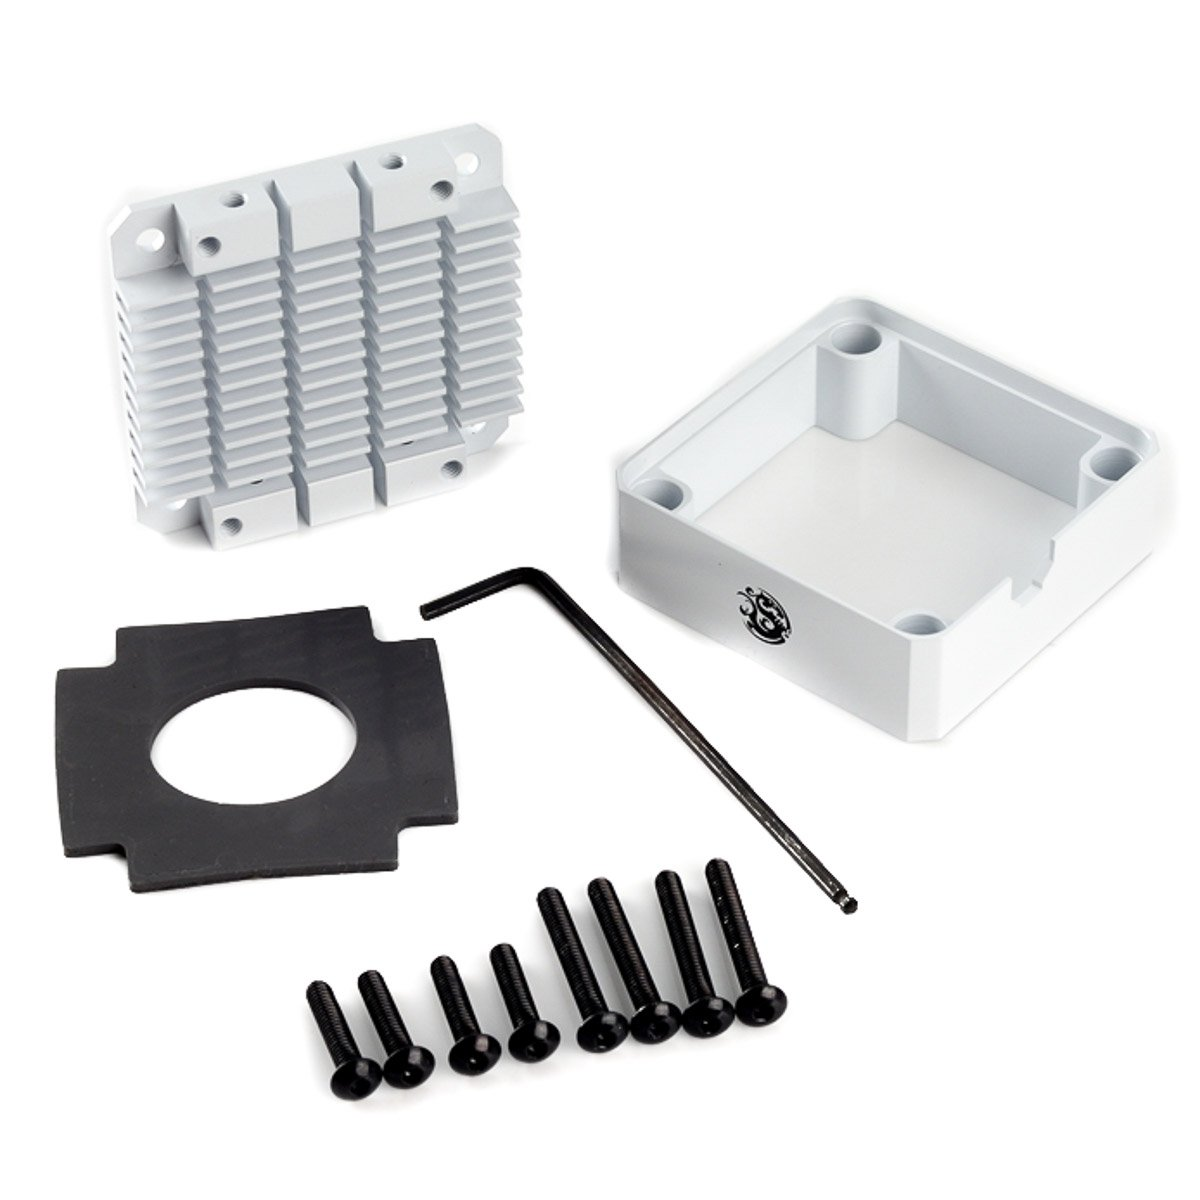 Bits Power Pump cooler white for DDC/MCP 355 (BP-DDCPC-WH) by Bits Power (Image #1)